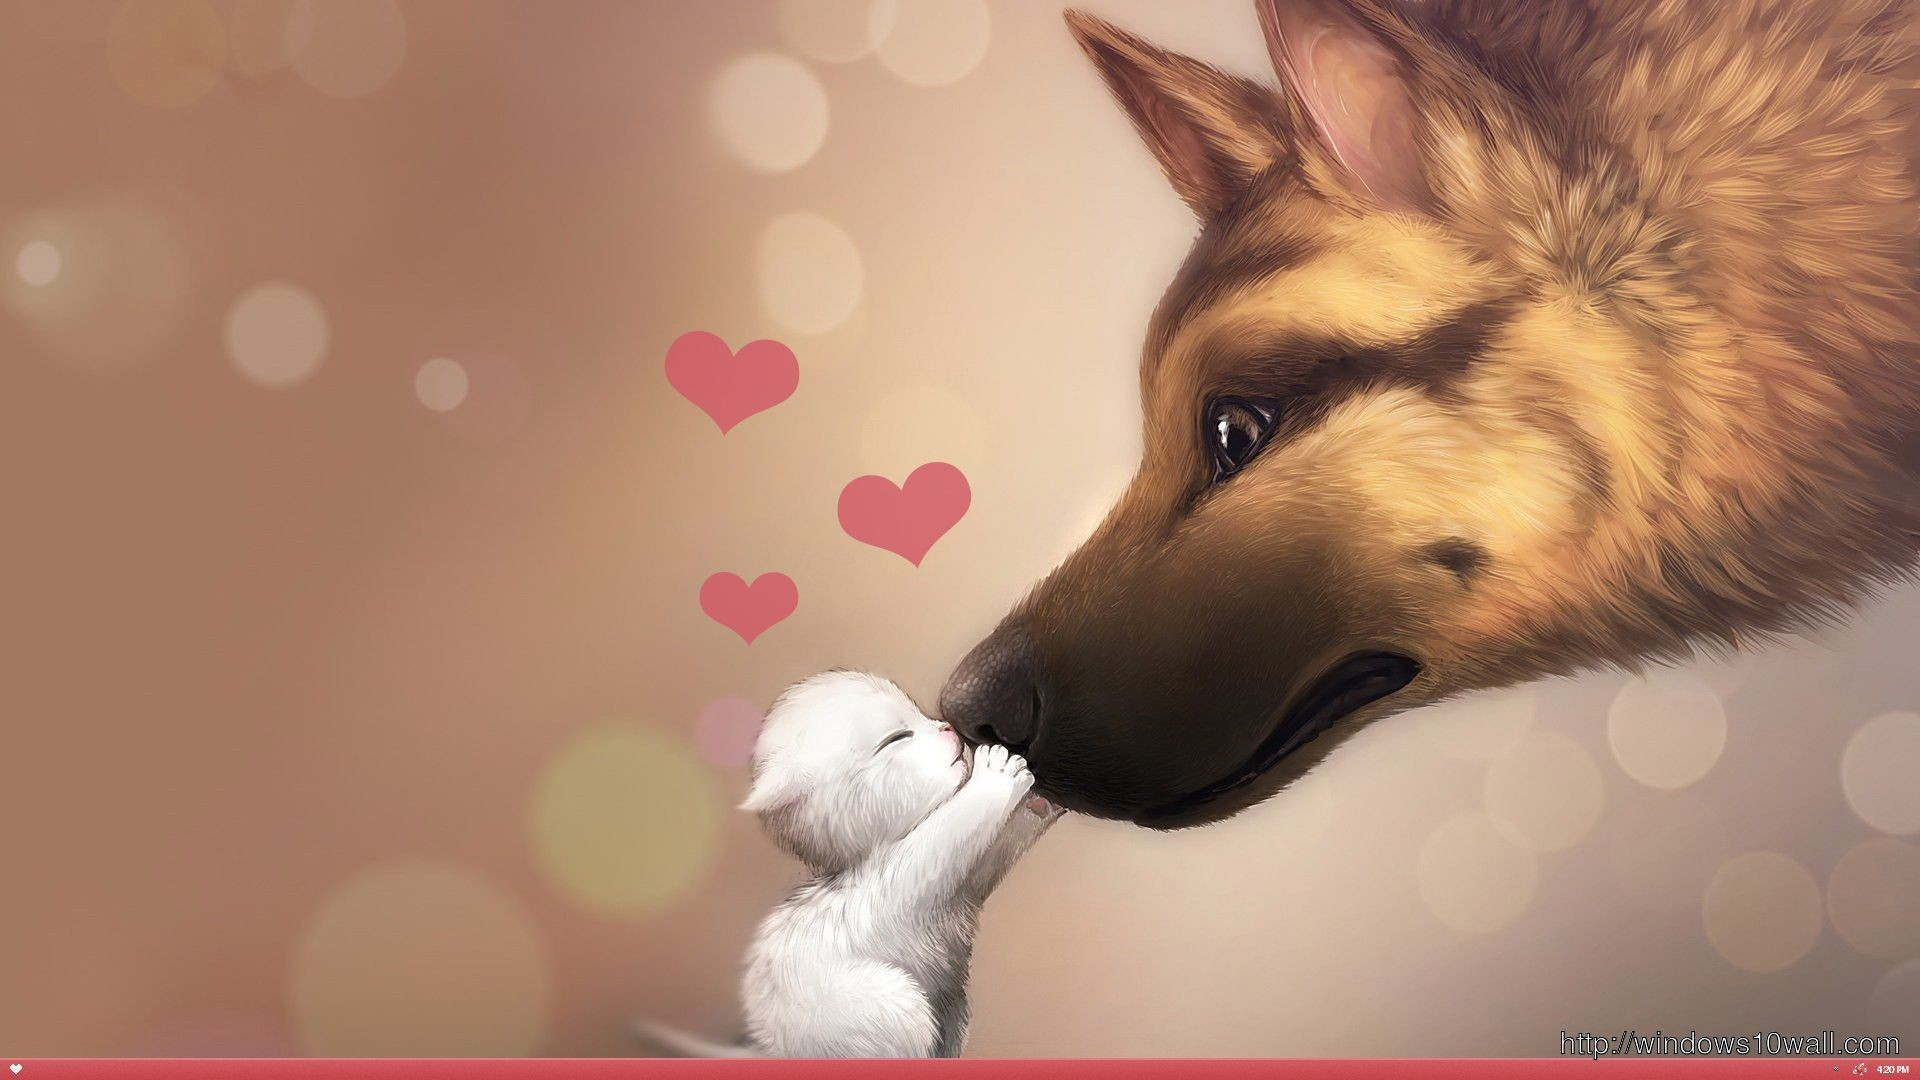 Very Cute Puppy Wallpapers Valentines Day Dog Wallpaper 59 Images